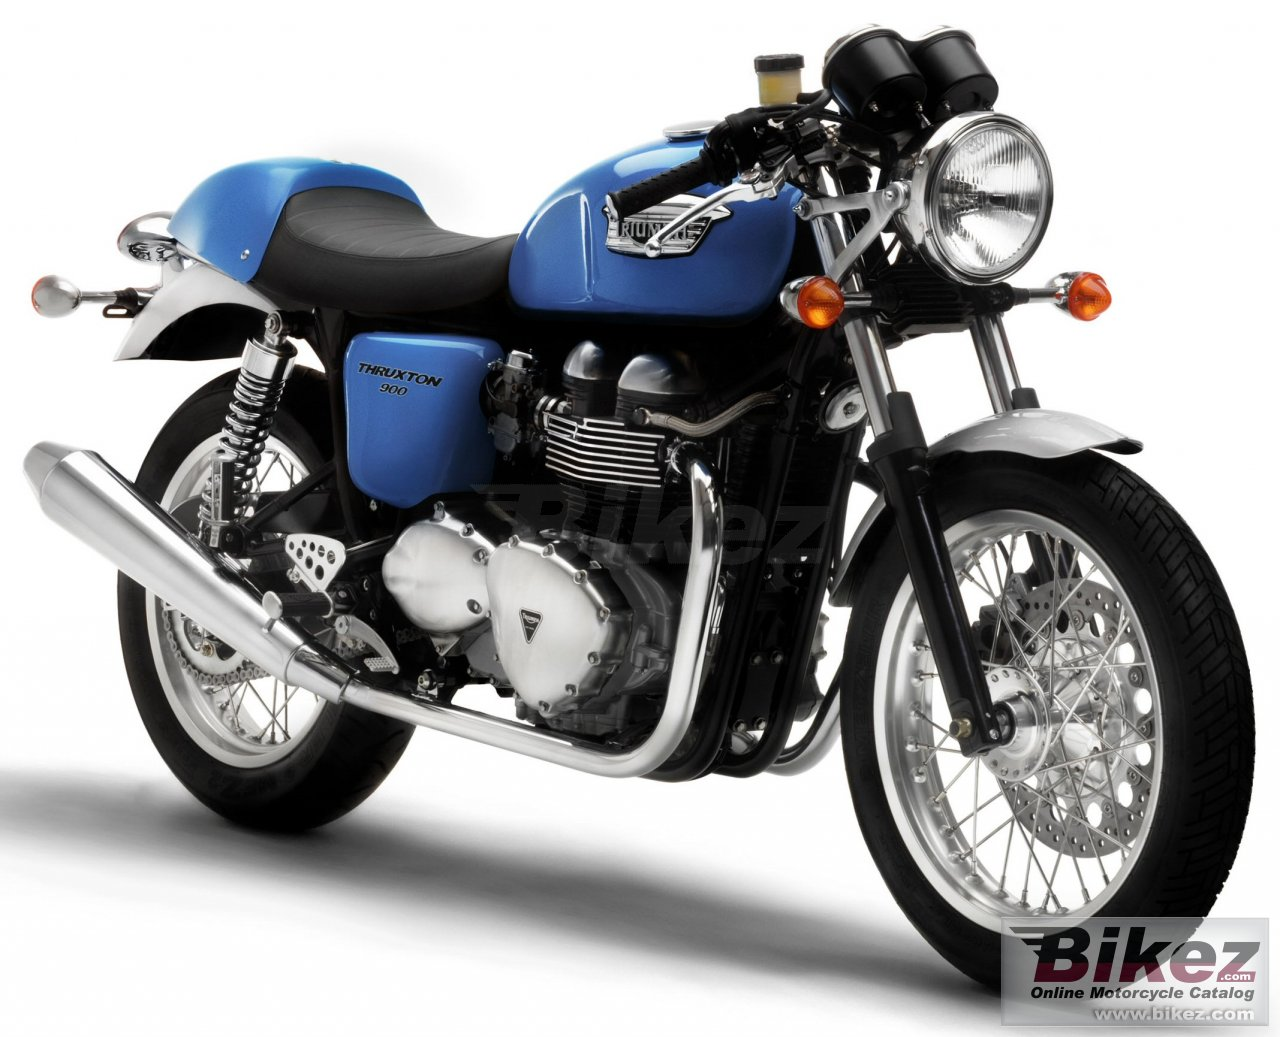 Big Triumph thruxton 900 picture and wallpaper from Bikez.com